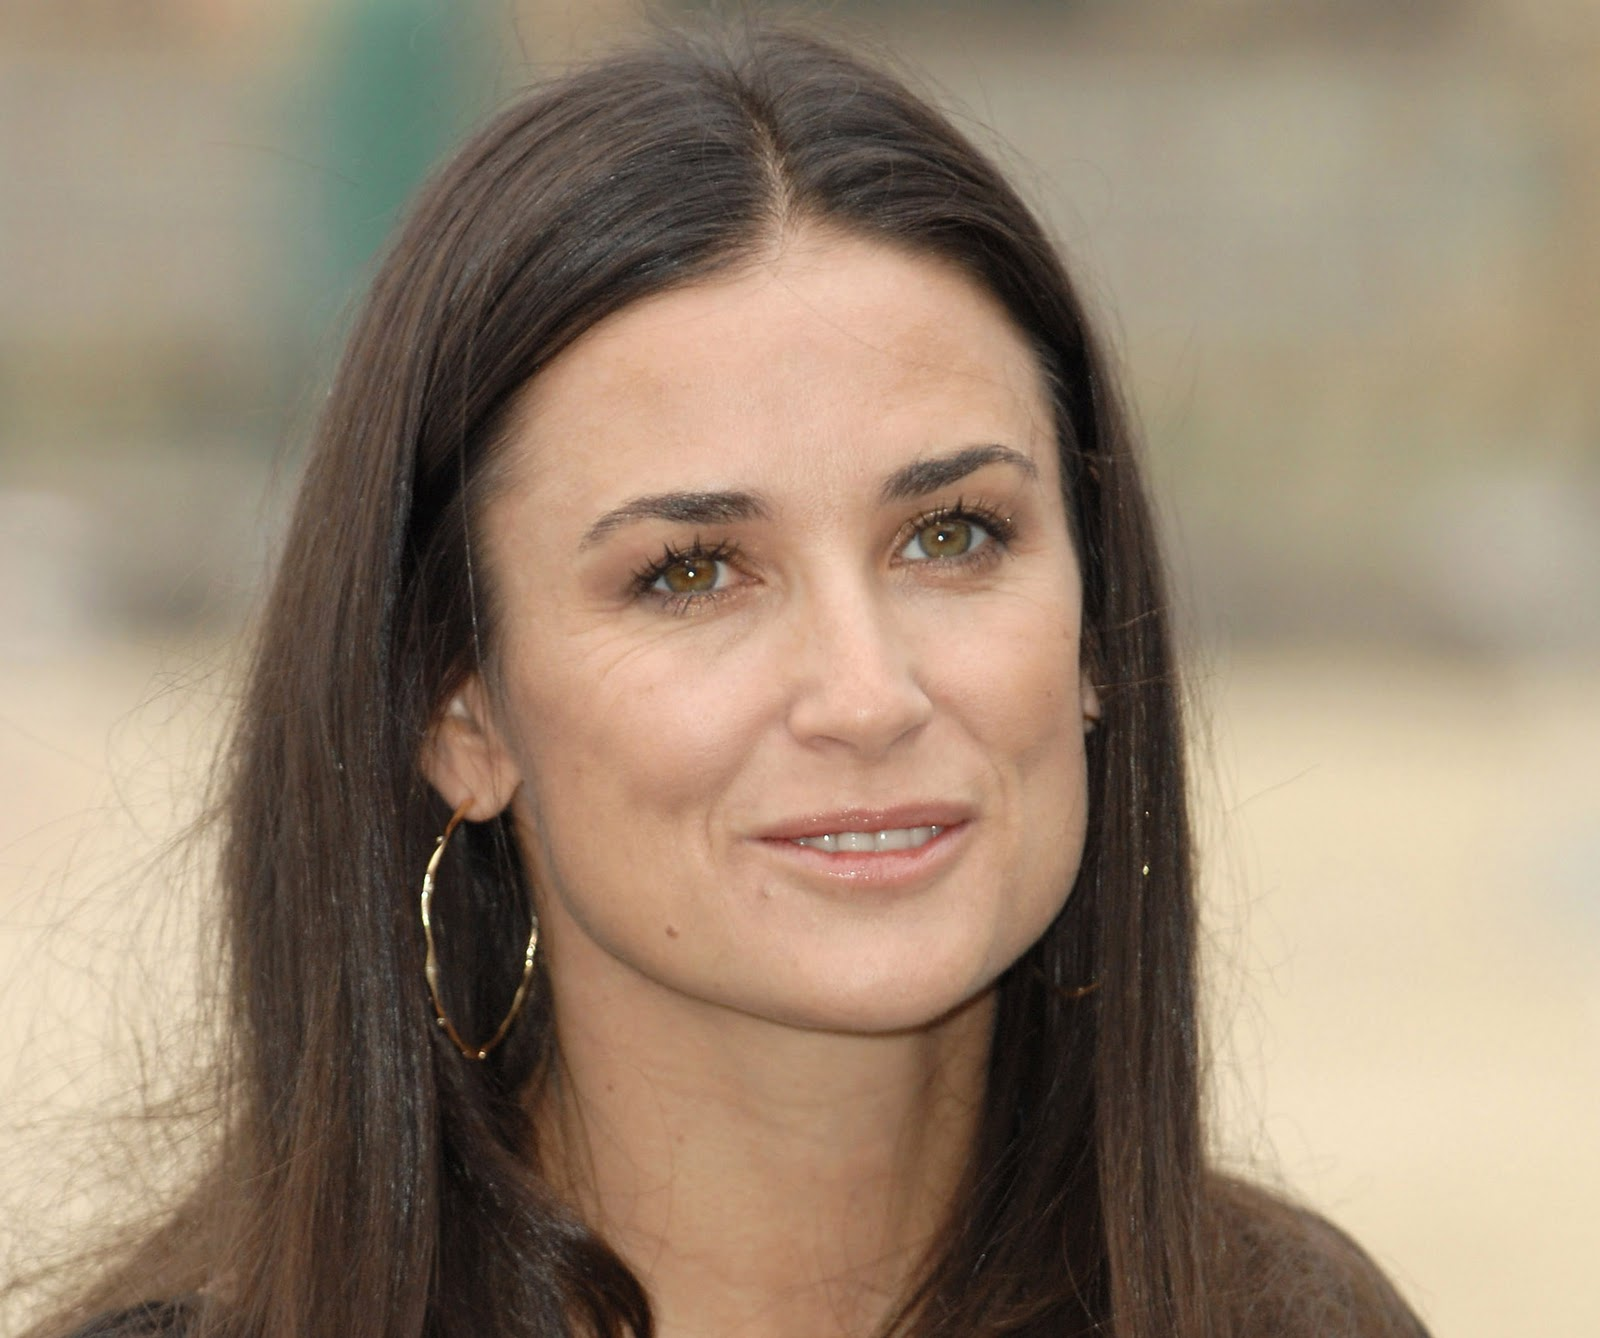 Demi mooredemi guynes kutcher (born november 11, 1962), known professionally as demi moore, is an american actress